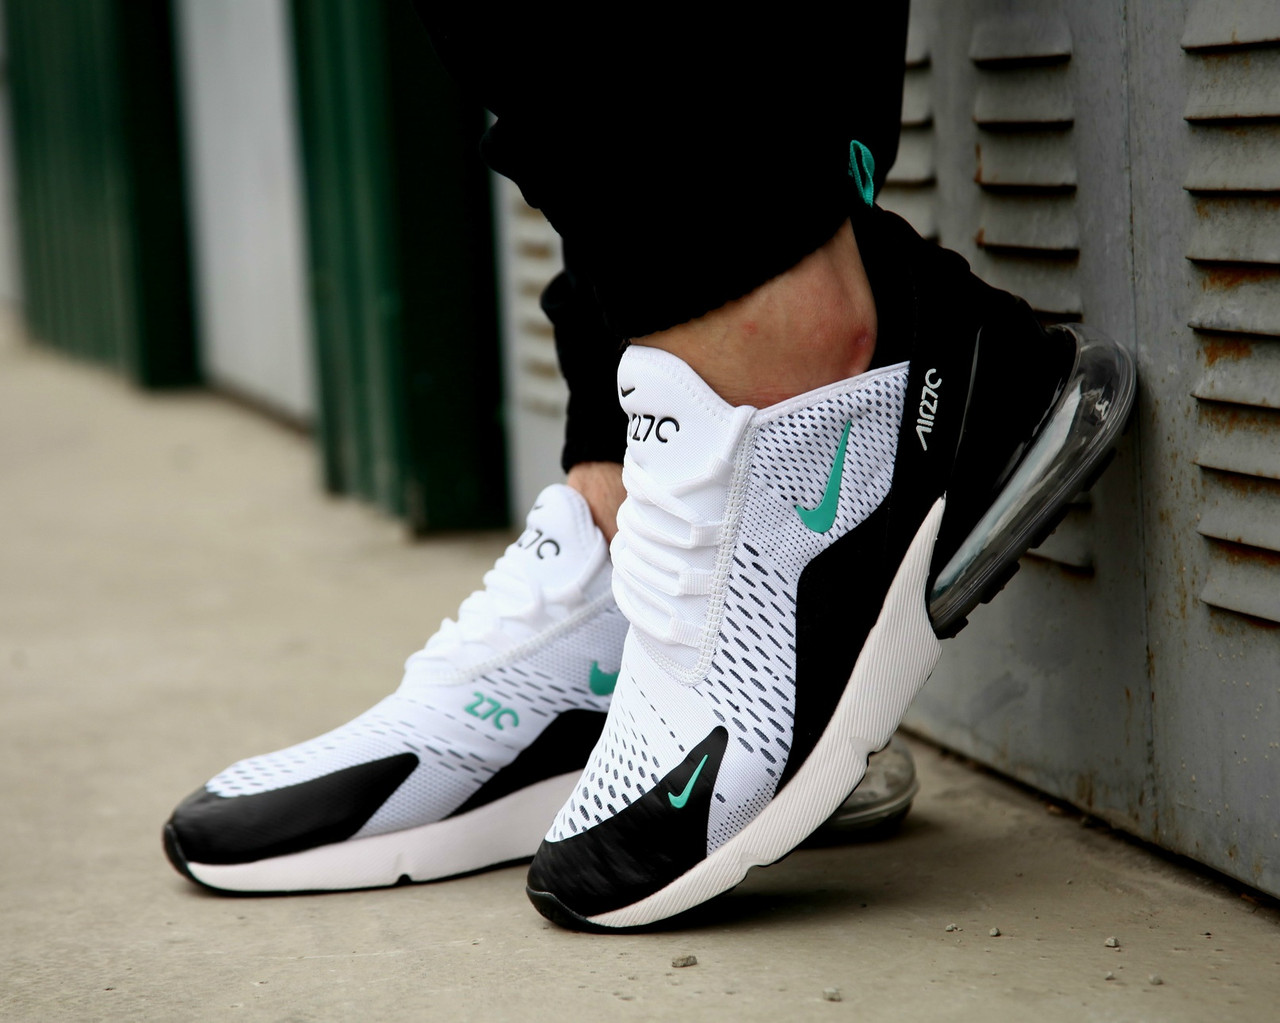 separation shoes 44b55 6f500 Мужские кроссовки NIKE AIR MAX 270 Dusty Cactus